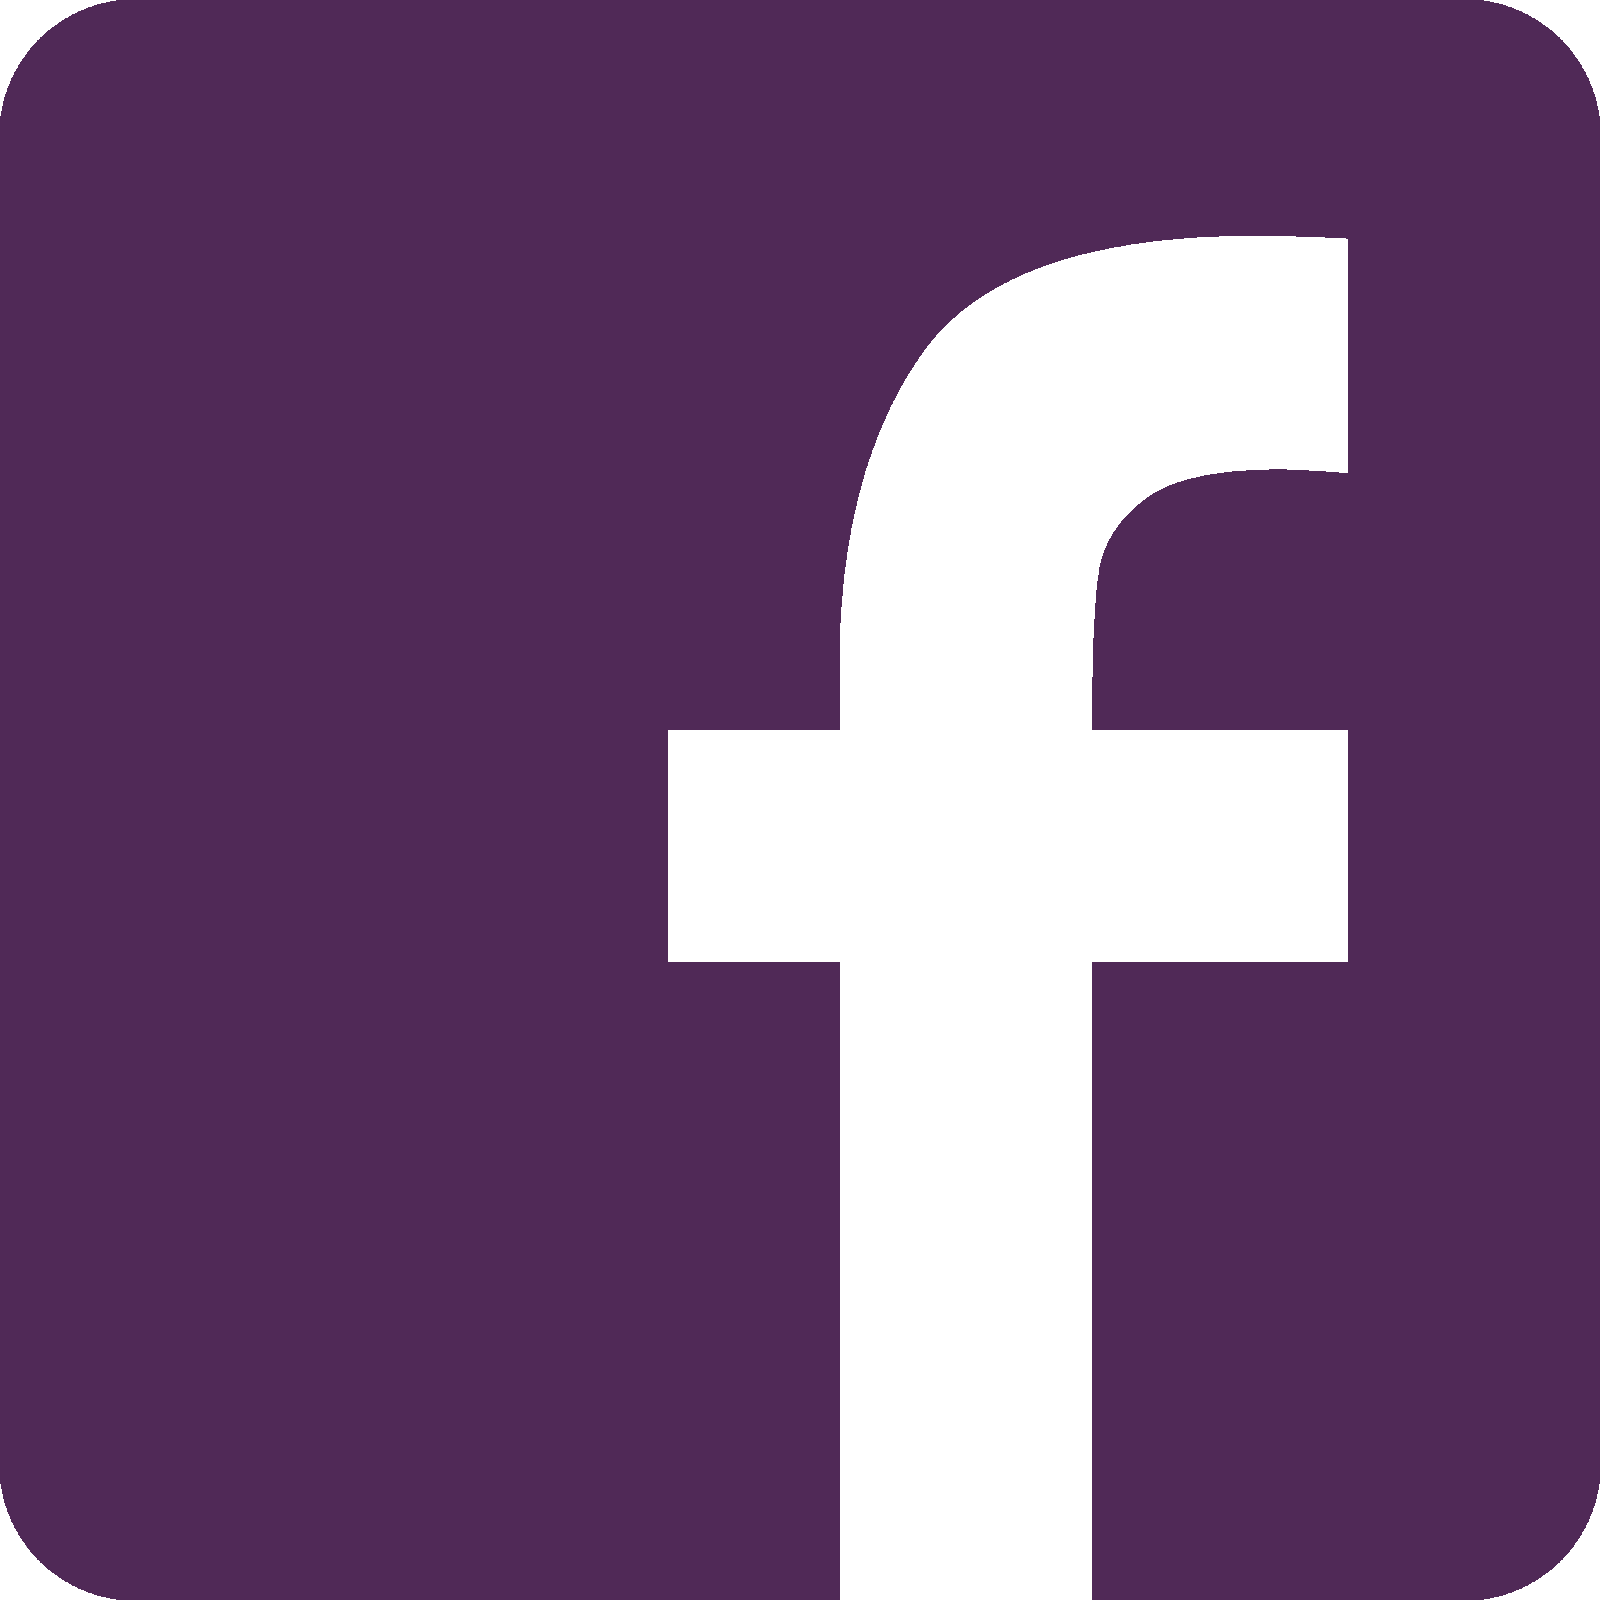 Facebook - Purple.png